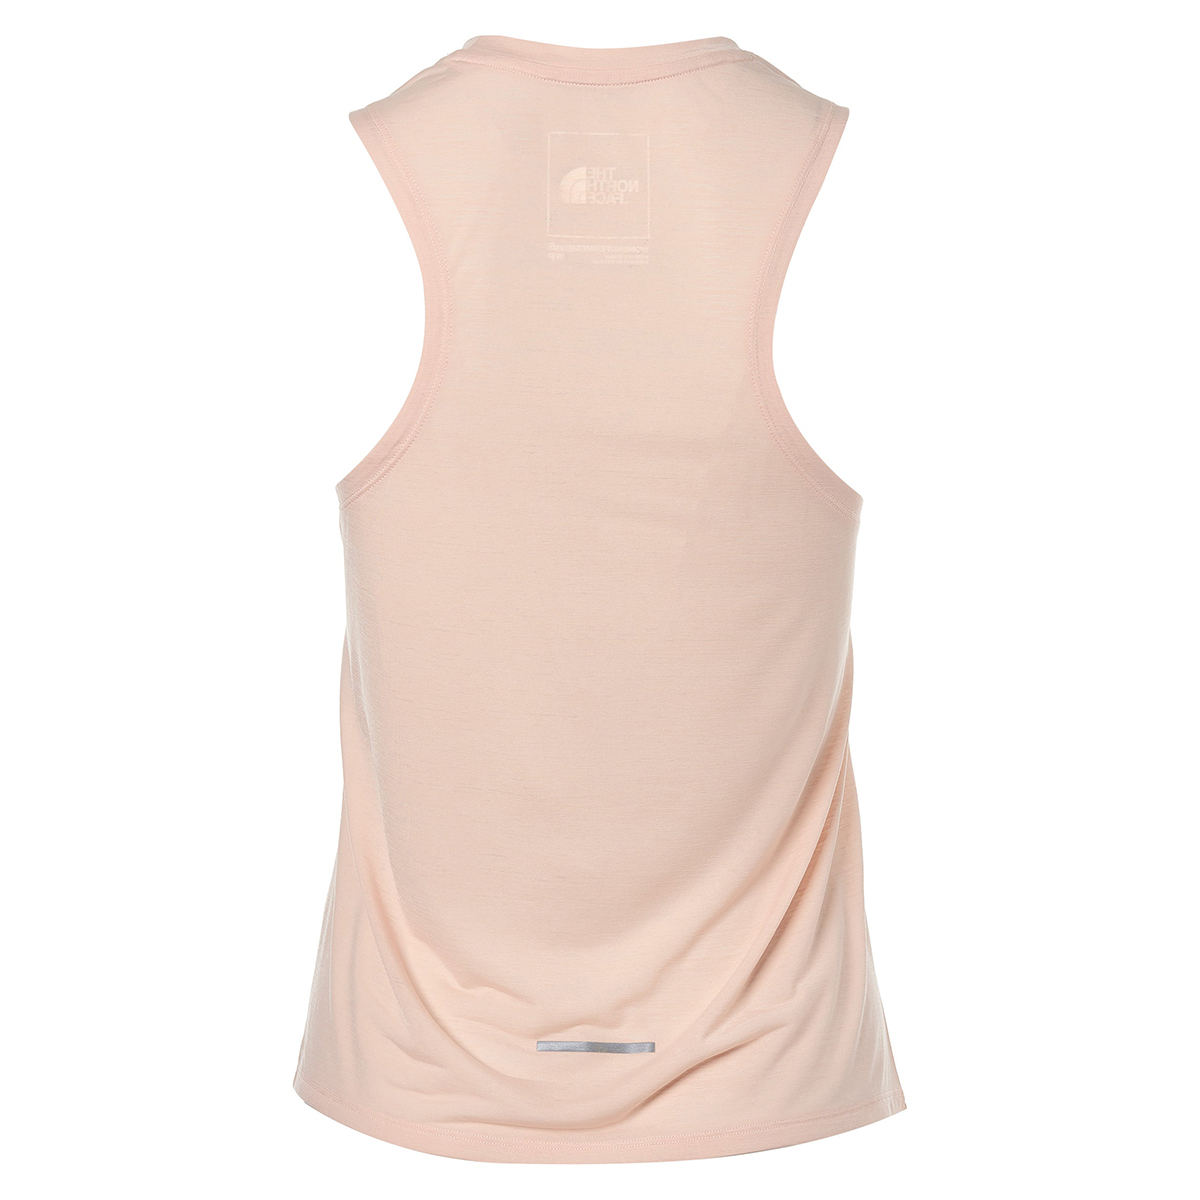 Women's The North Face Up With The Sun Tank - Color: Evening Sand Pink - Size: S, Evening Sand Pink, large, image 2